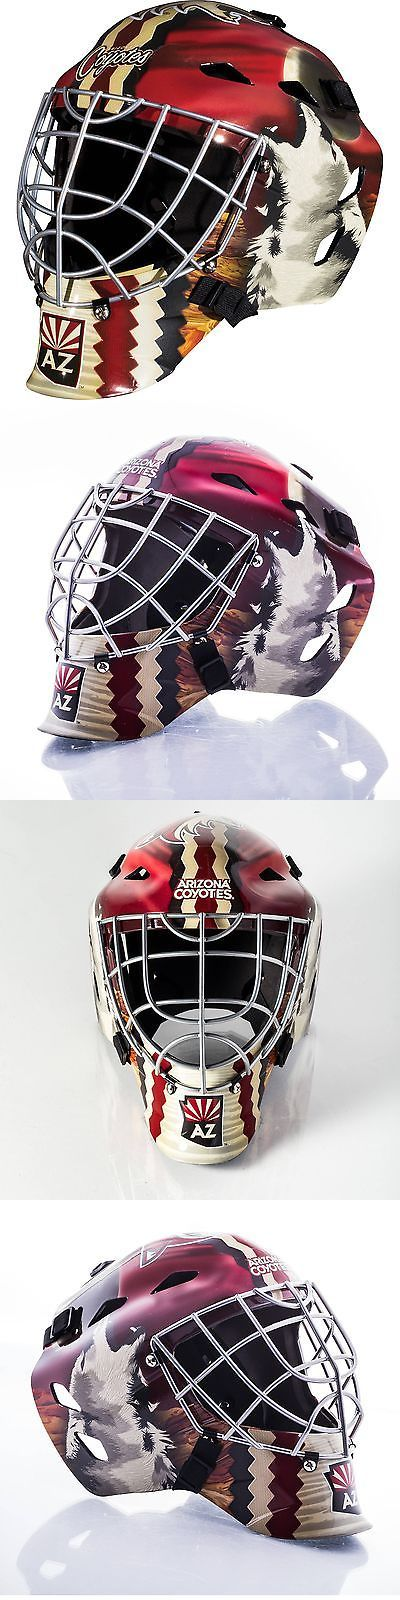 Face Masks 79762: Franklin Sports Gfm 1500 Goalie Face Mask Phoenix Coyotes -> BUY IT NOW ONLY: $45.99 on eBay!